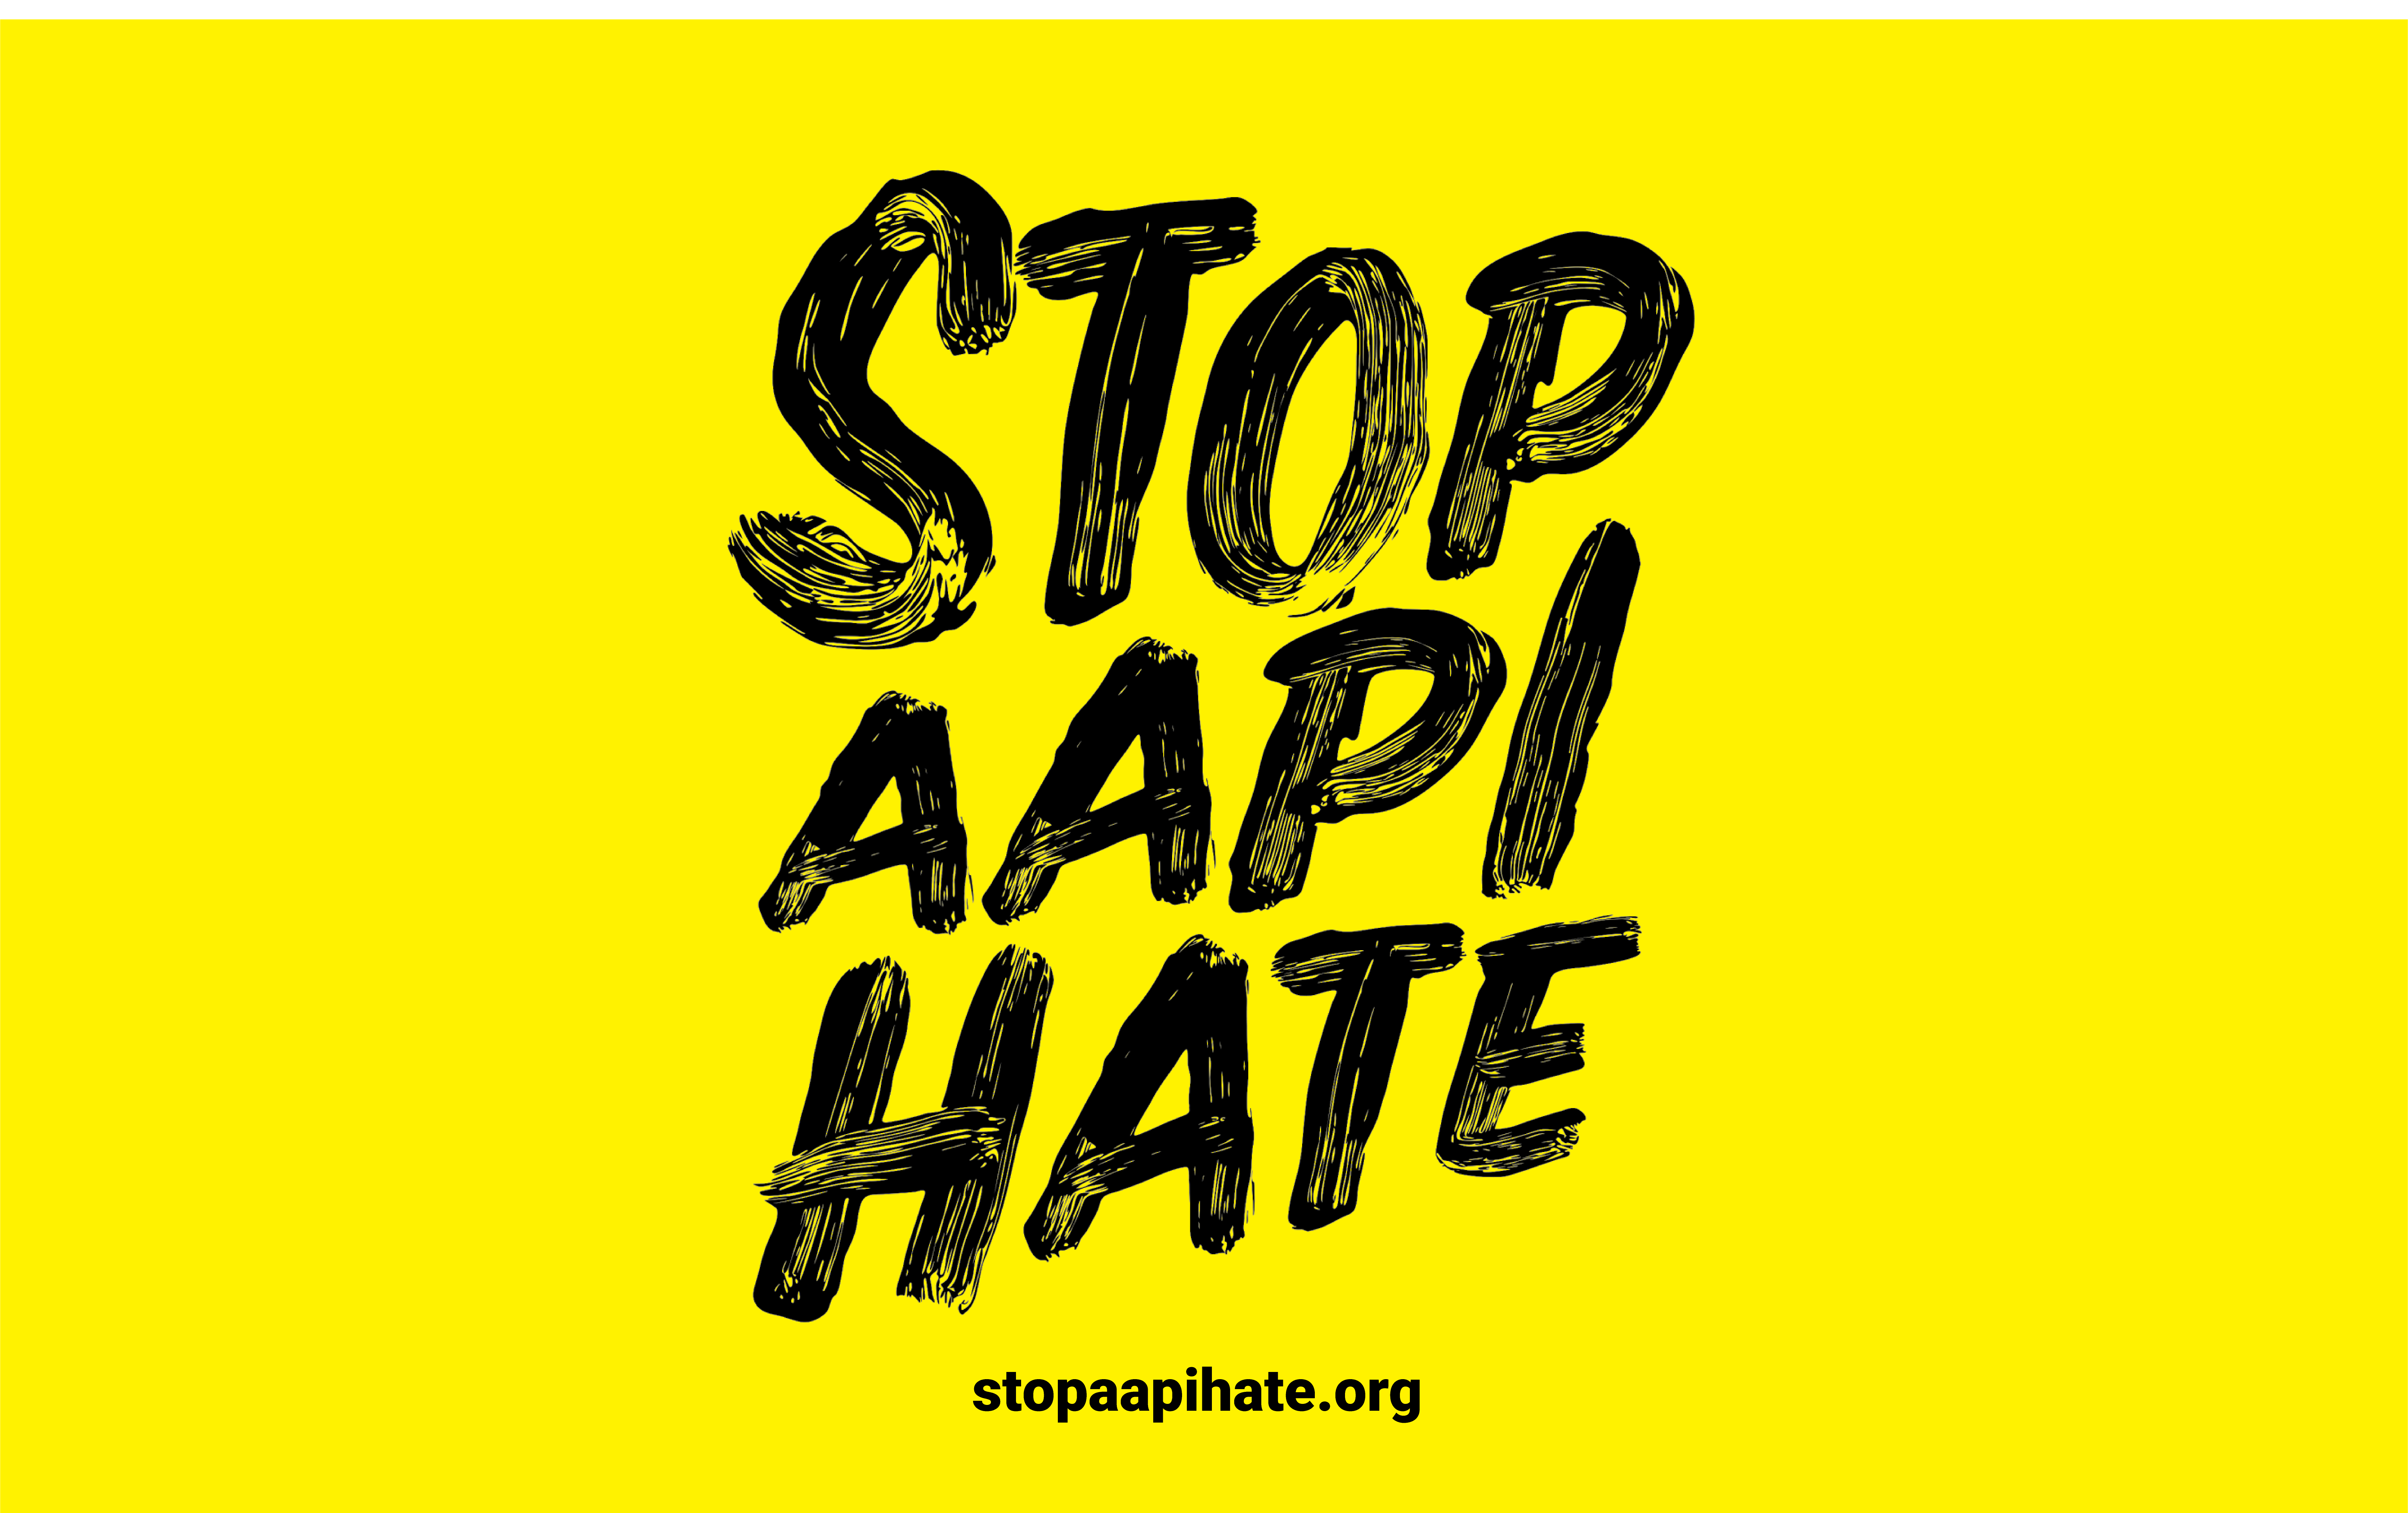 Condemning Hate Crimes Against the AAPI Community